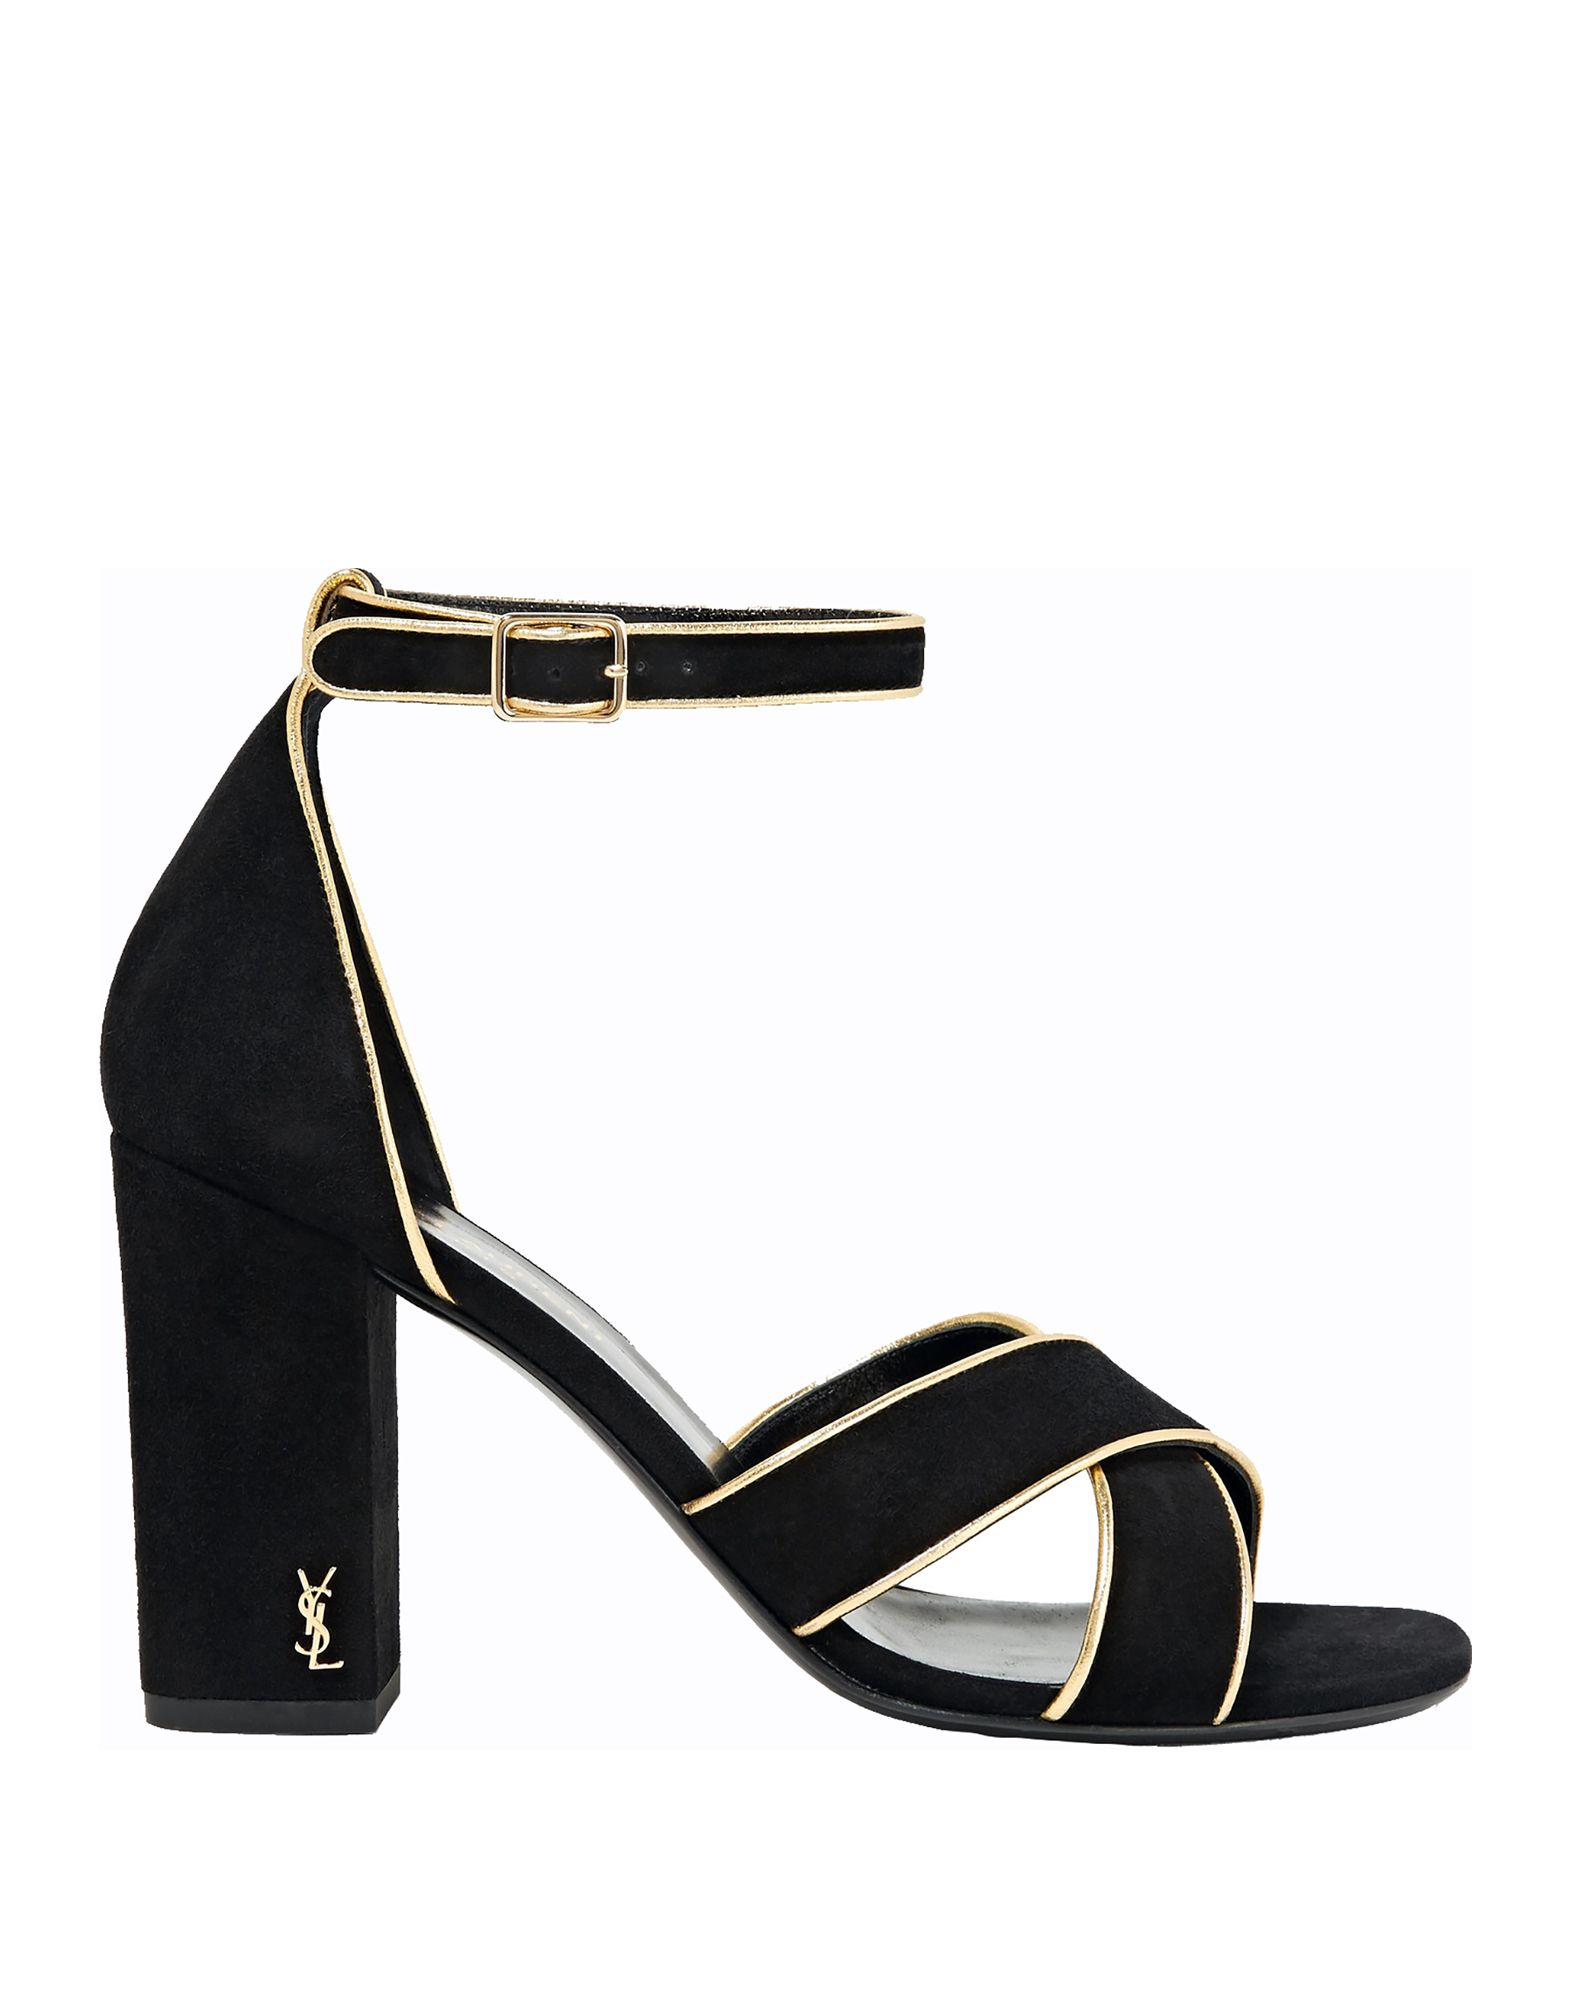 Saint Laurent Sandals - Women Saint Laurent Canada Sandals online on  Canada Laurent - 11476031VD 5aea65